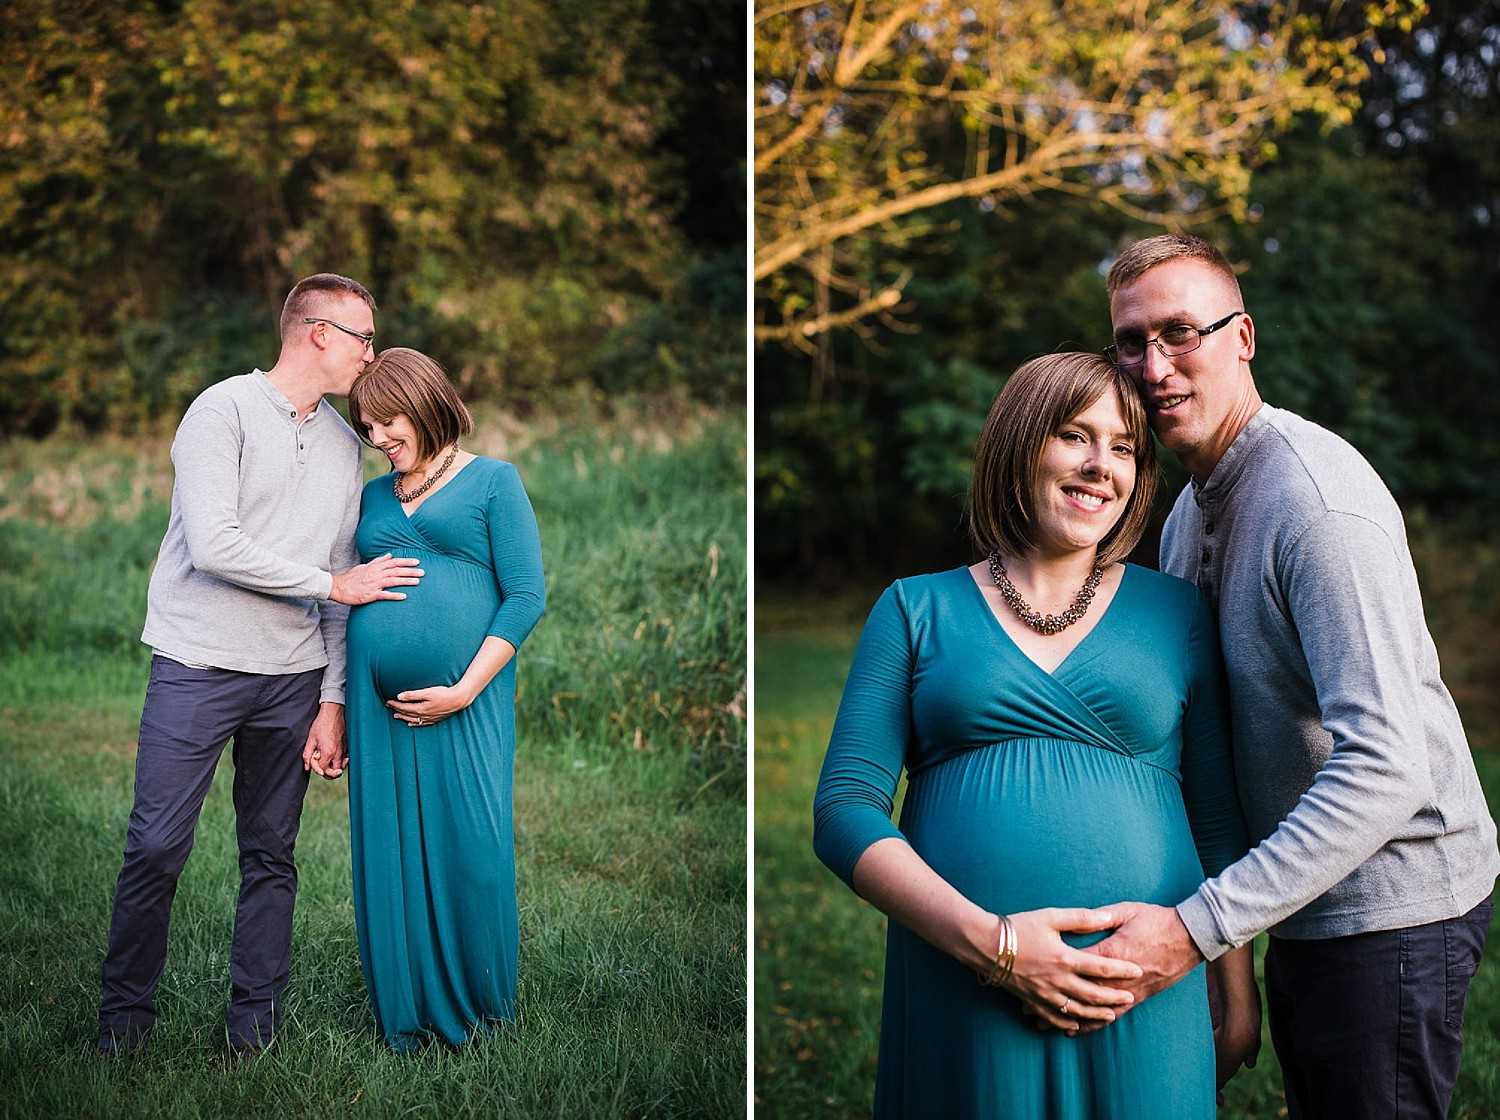 Photo of a pregnant woman in a teal dress and her husband smiling in the golden sunlight